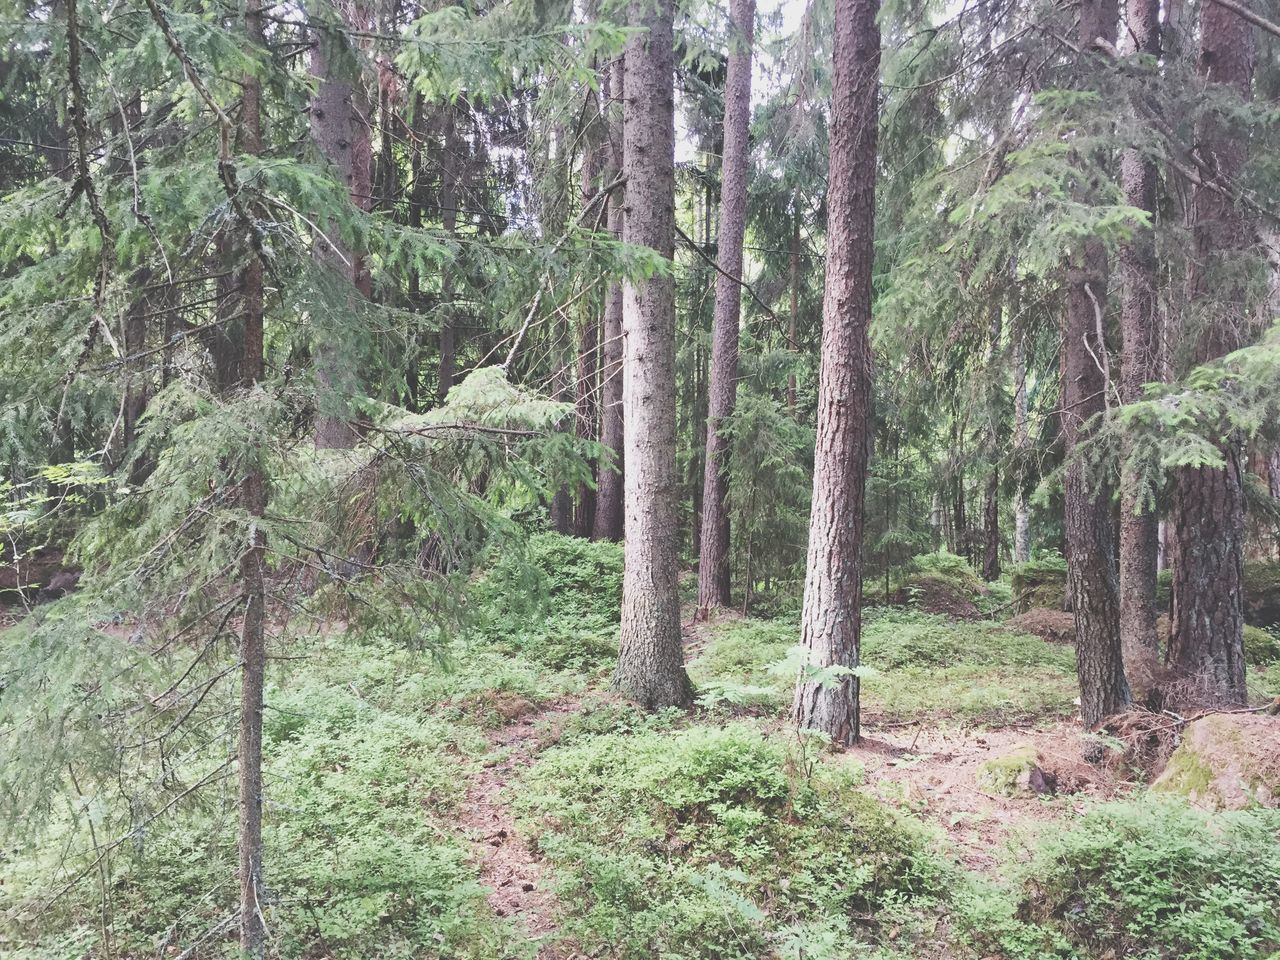 tree, tree trunk, forest, nature, no people, day, tranquility, growth, pine tree, beauty in nature, outdoors, tranquil scene, landscape, scenics, green color, grass